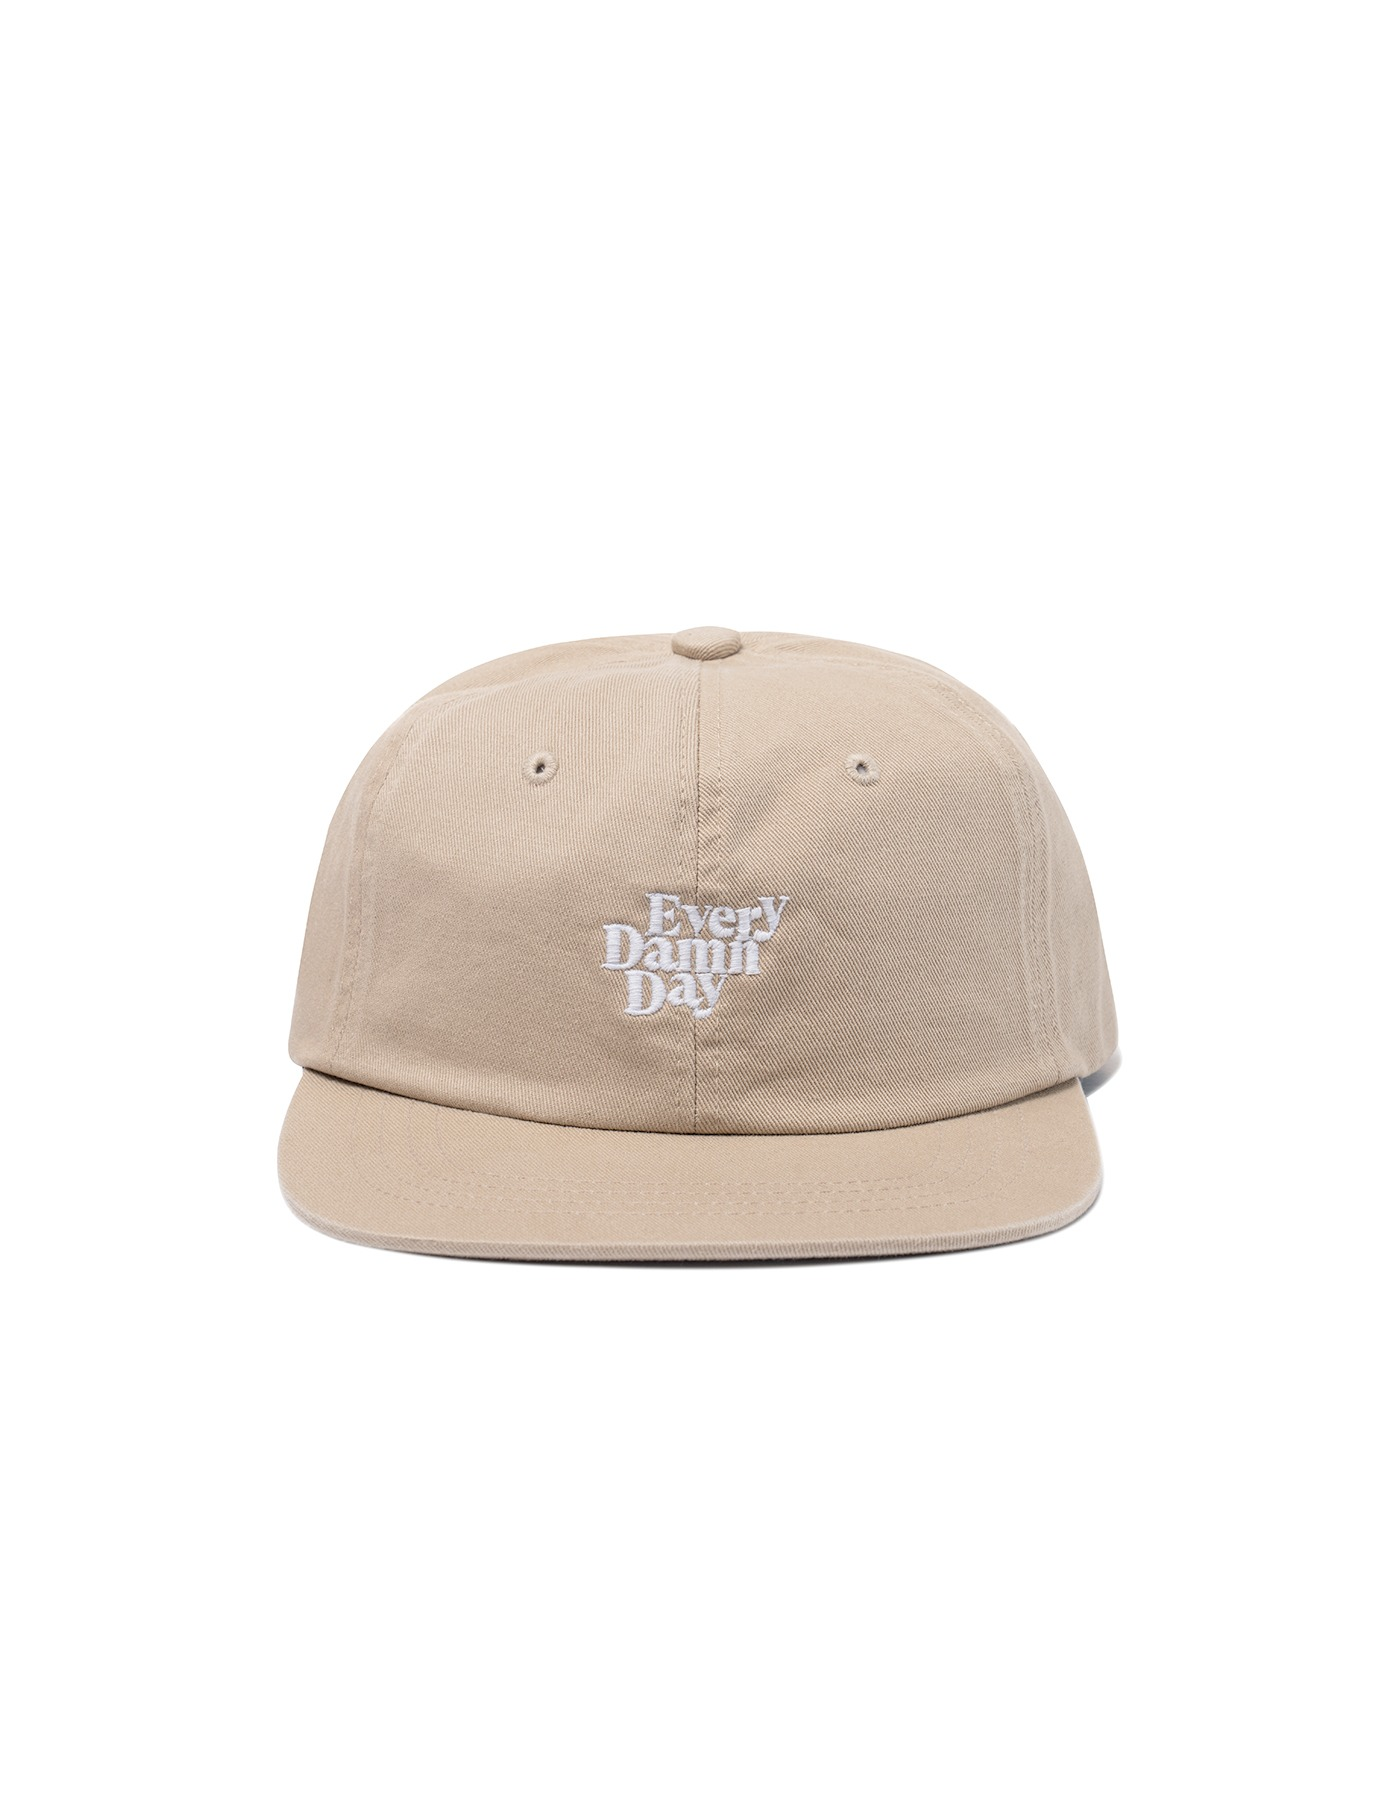 Every Damn Day Cap- Beige